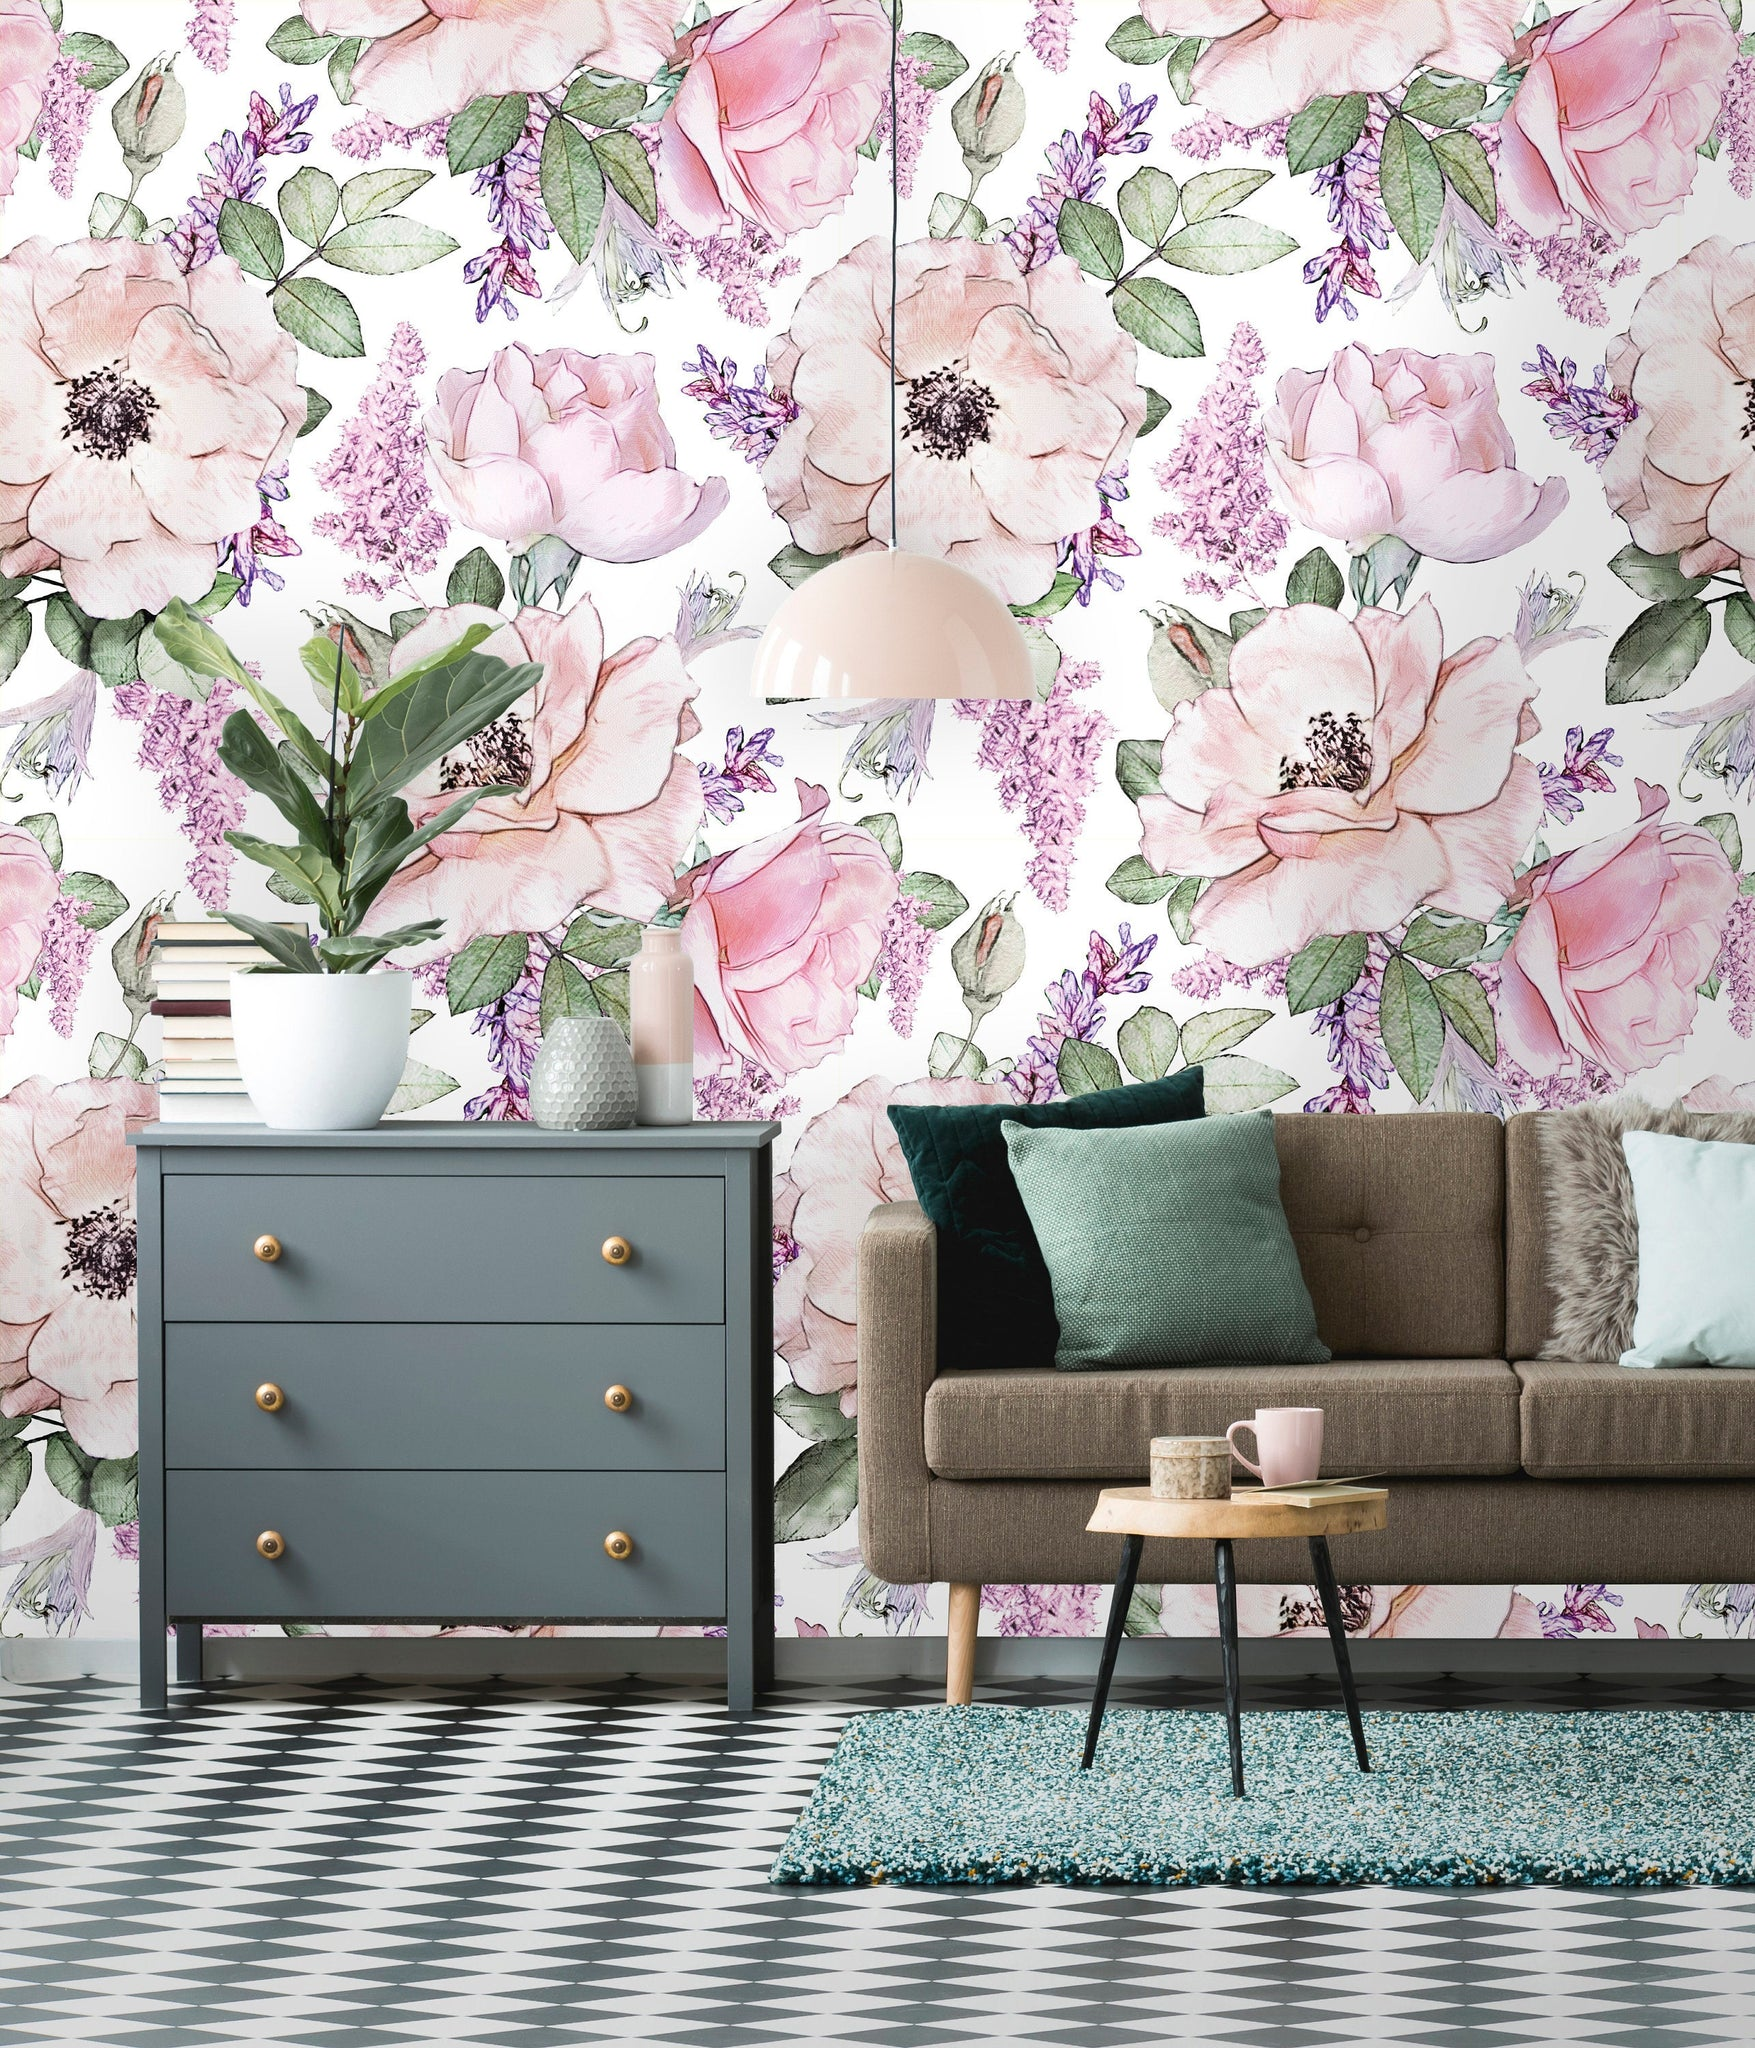 Peonies and Roses Leaves Floral Removable Wallpaper